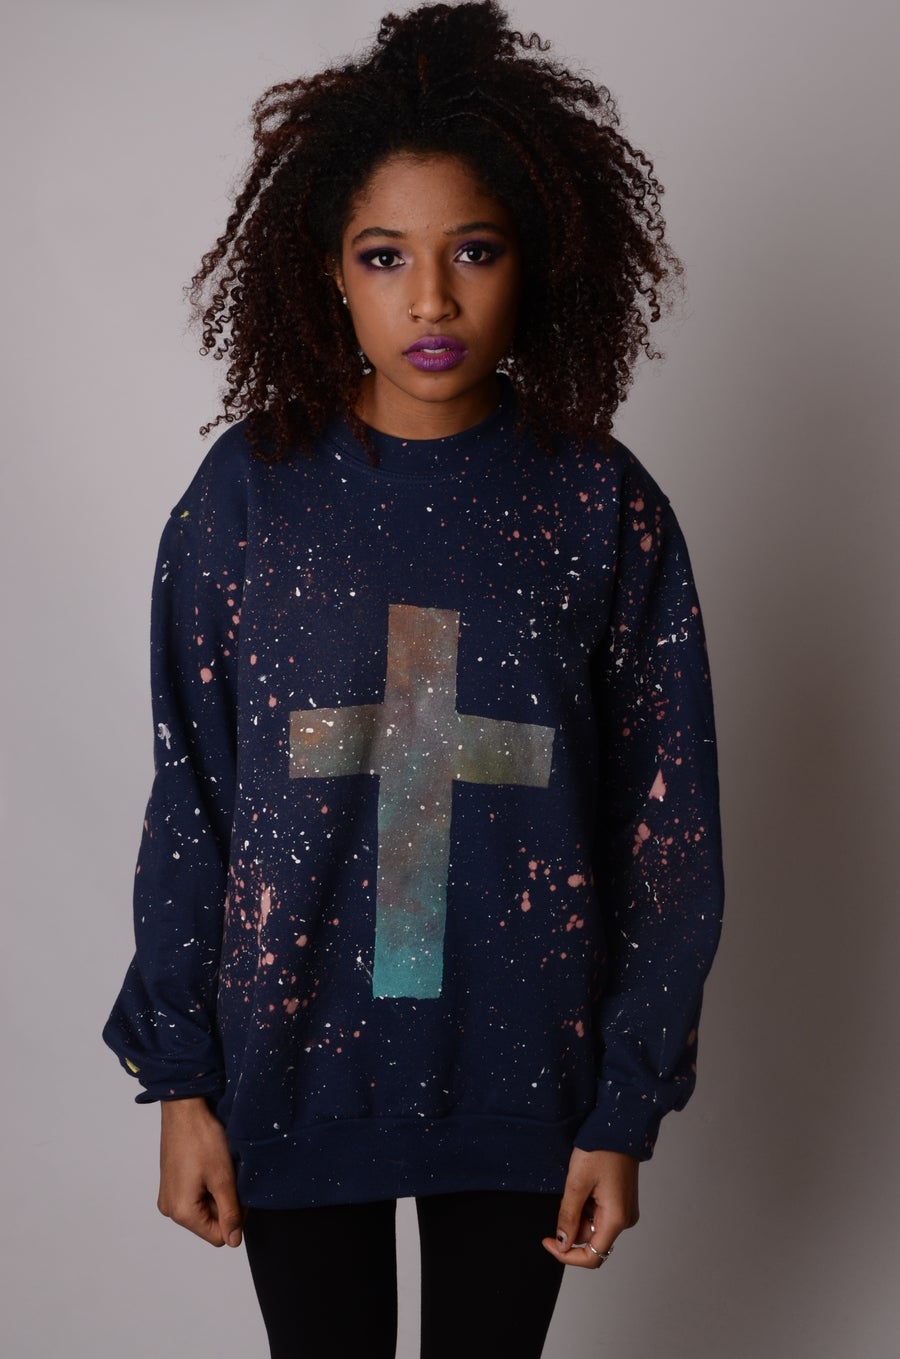 Image of Hand Painted Unisex Celestial Cross Crewneck Sweatshirt